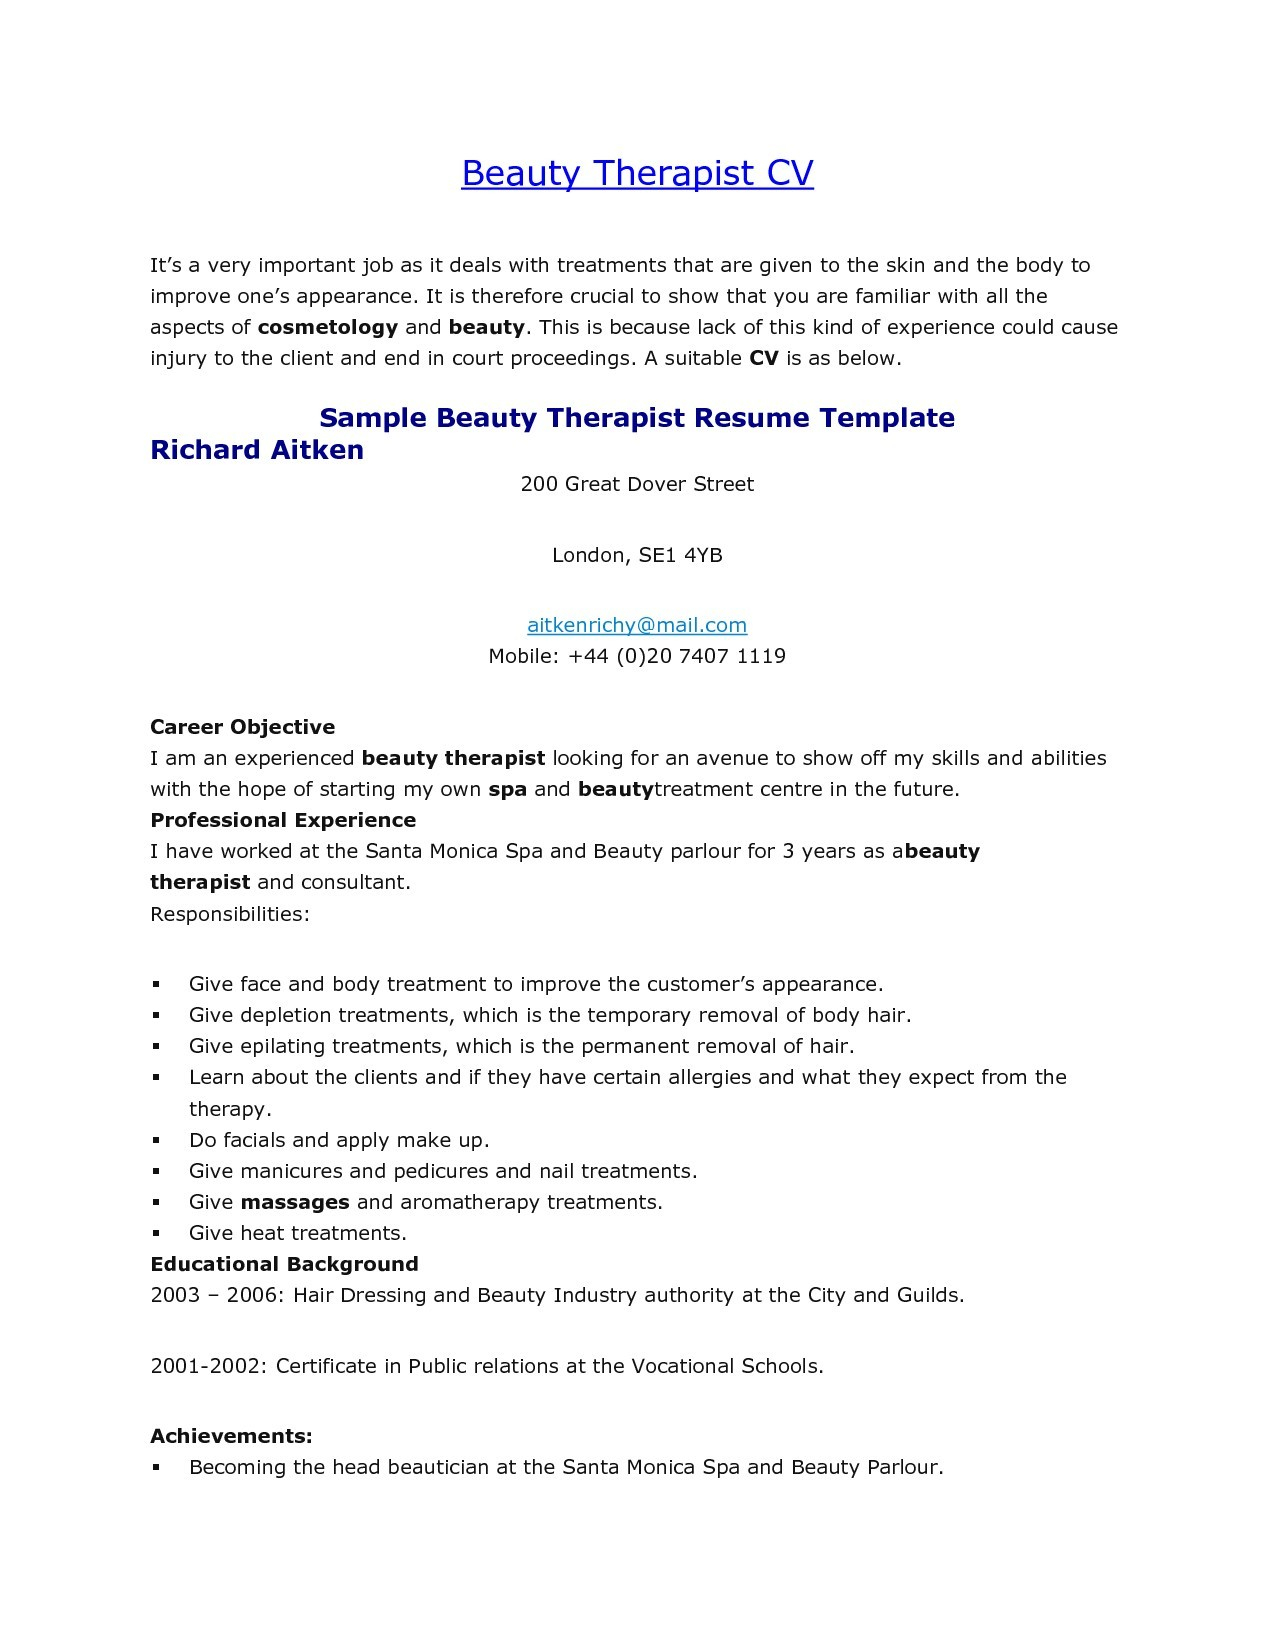 Resume Massage therapy - Massage therapy Resume Best Objective Resume Examples Fresh